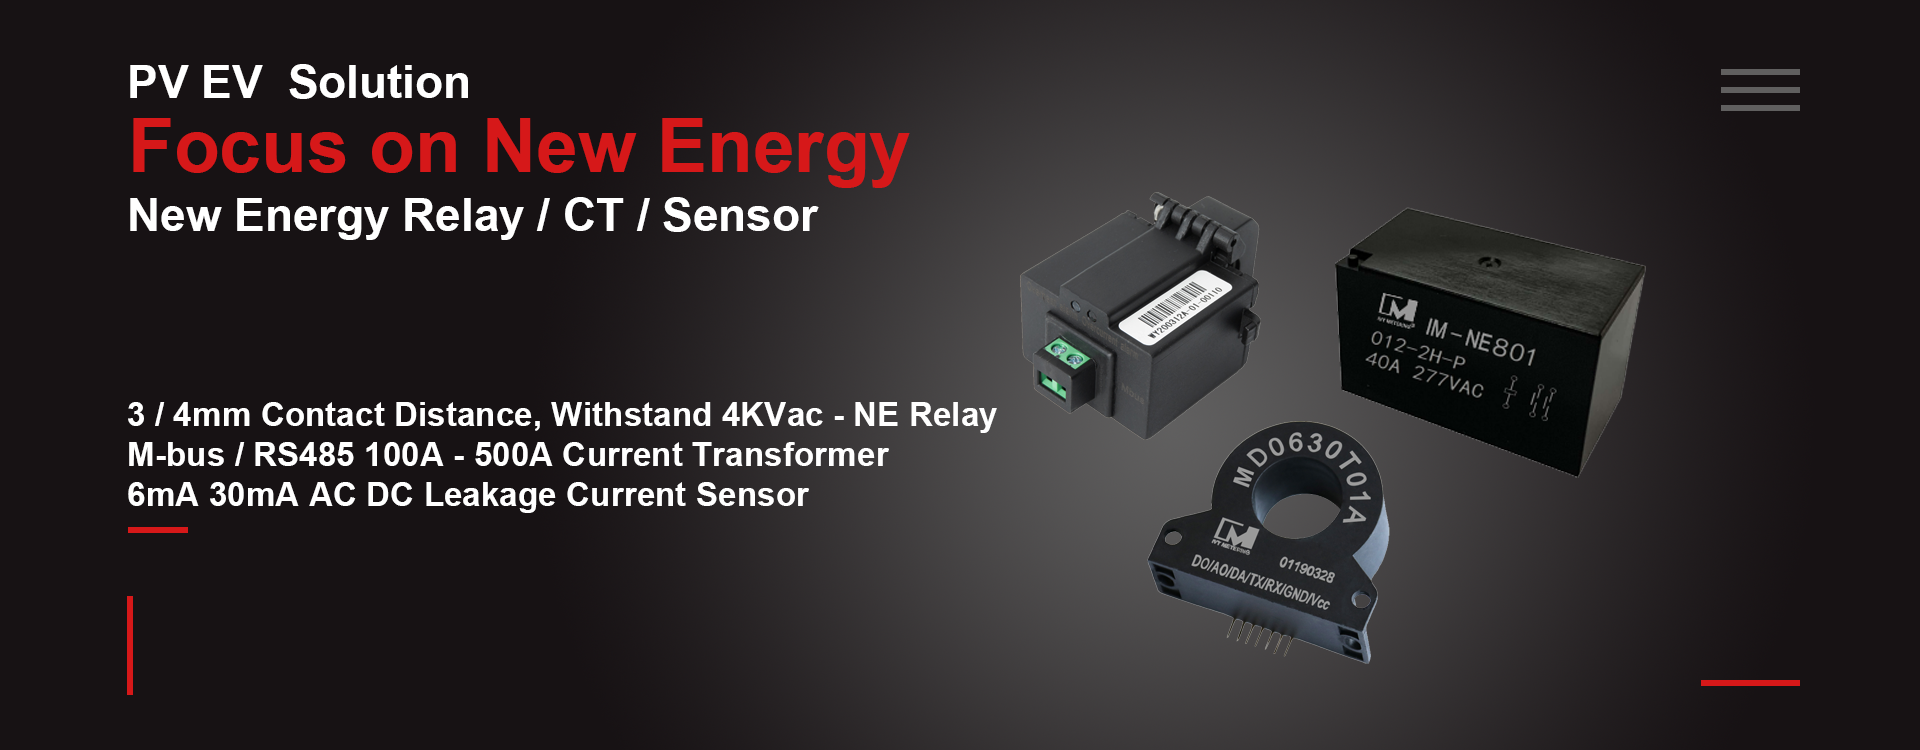 PV part, EV parts, EV relay, AC DC Leakage sensor, Ct with M-bus, New energy Relay